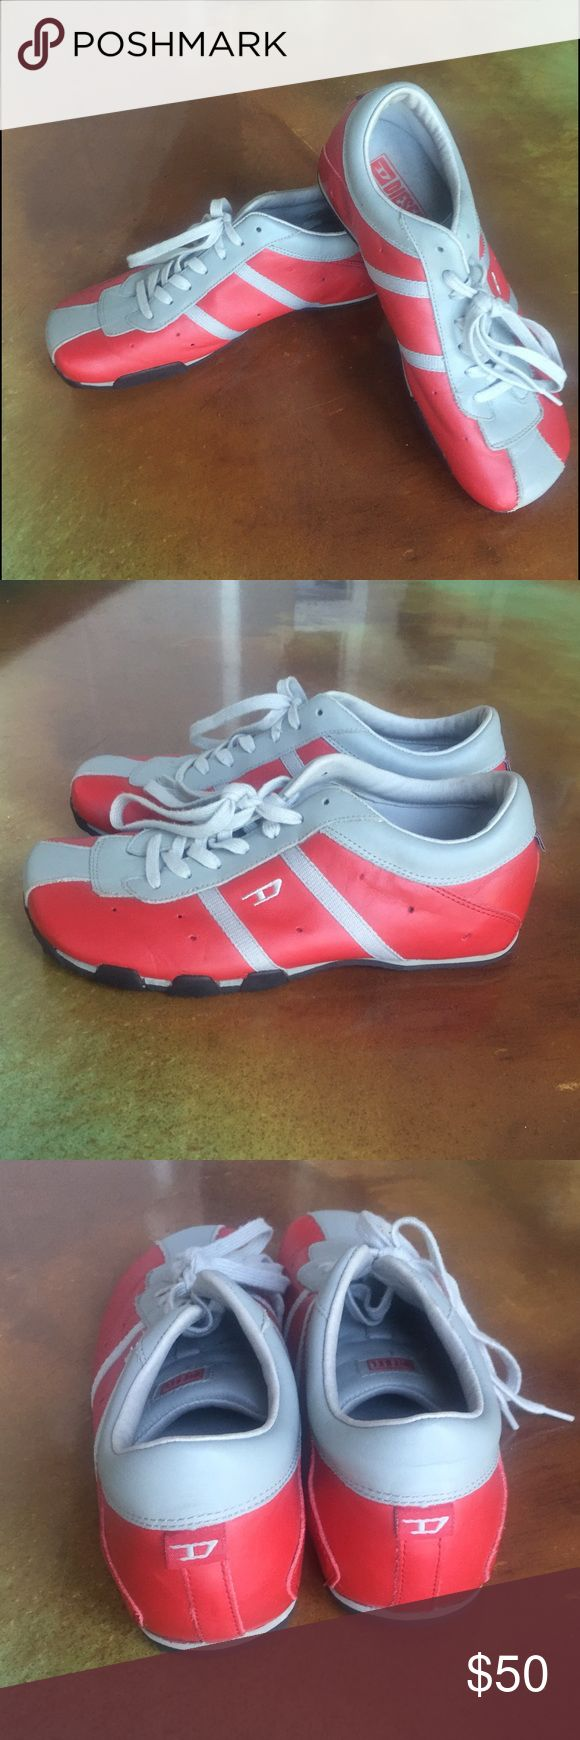 Like New Diesel Red / Gray Athletic Shoes Size 9.5 This is a fabulous pair of Diesel Athletic shoes in a size 9.5. These shoes are made of red leather trimmed in Gray and are in perfect condition. I don't think these were ever worn. I purchased these in NYC for $160. Diesel Shoes Athletic Shoes